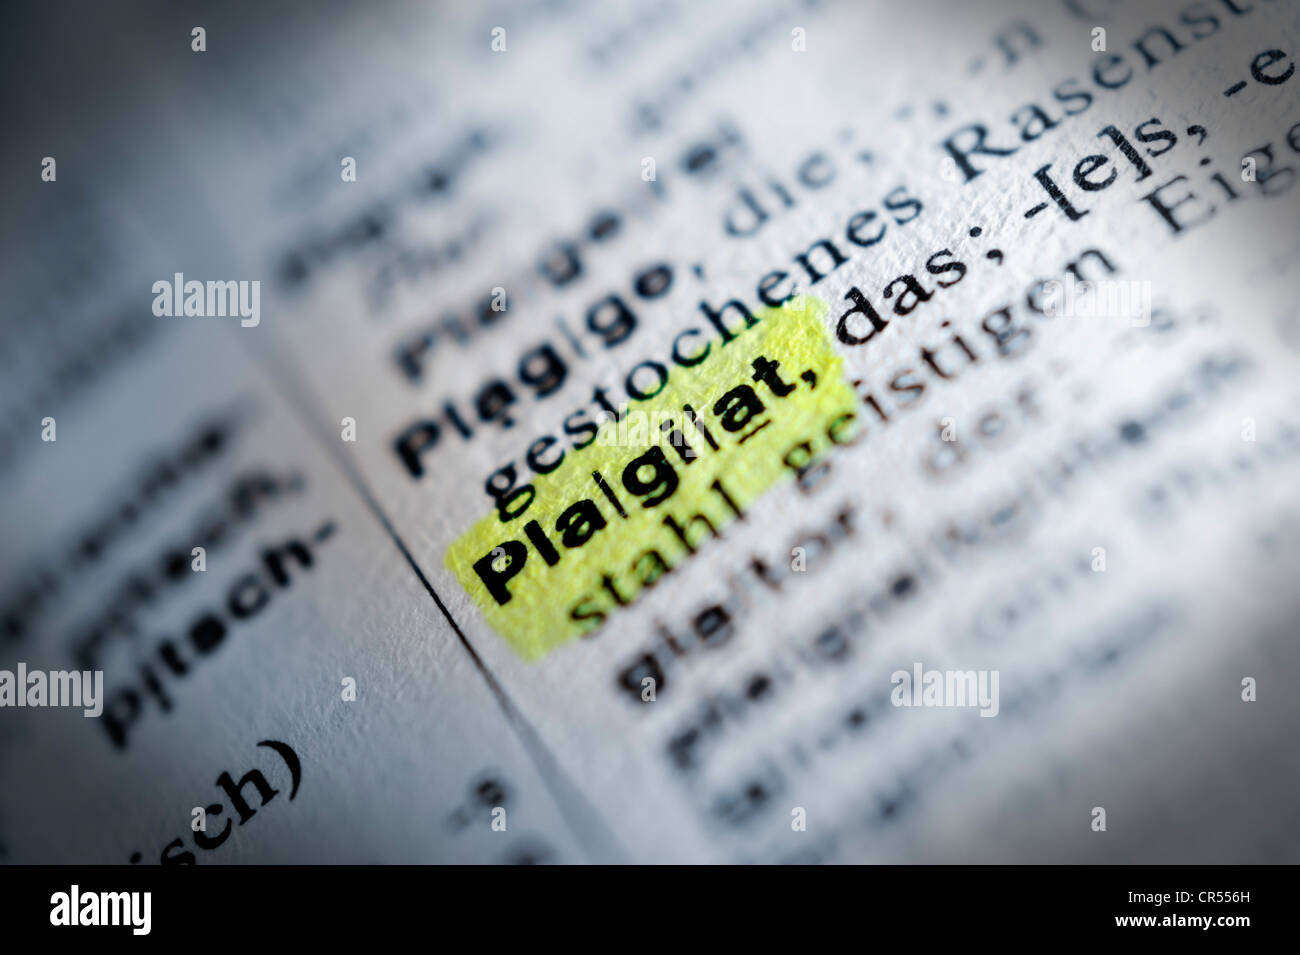 Definition of plagiarism in a German dictionary, Plagiat - Stock Image